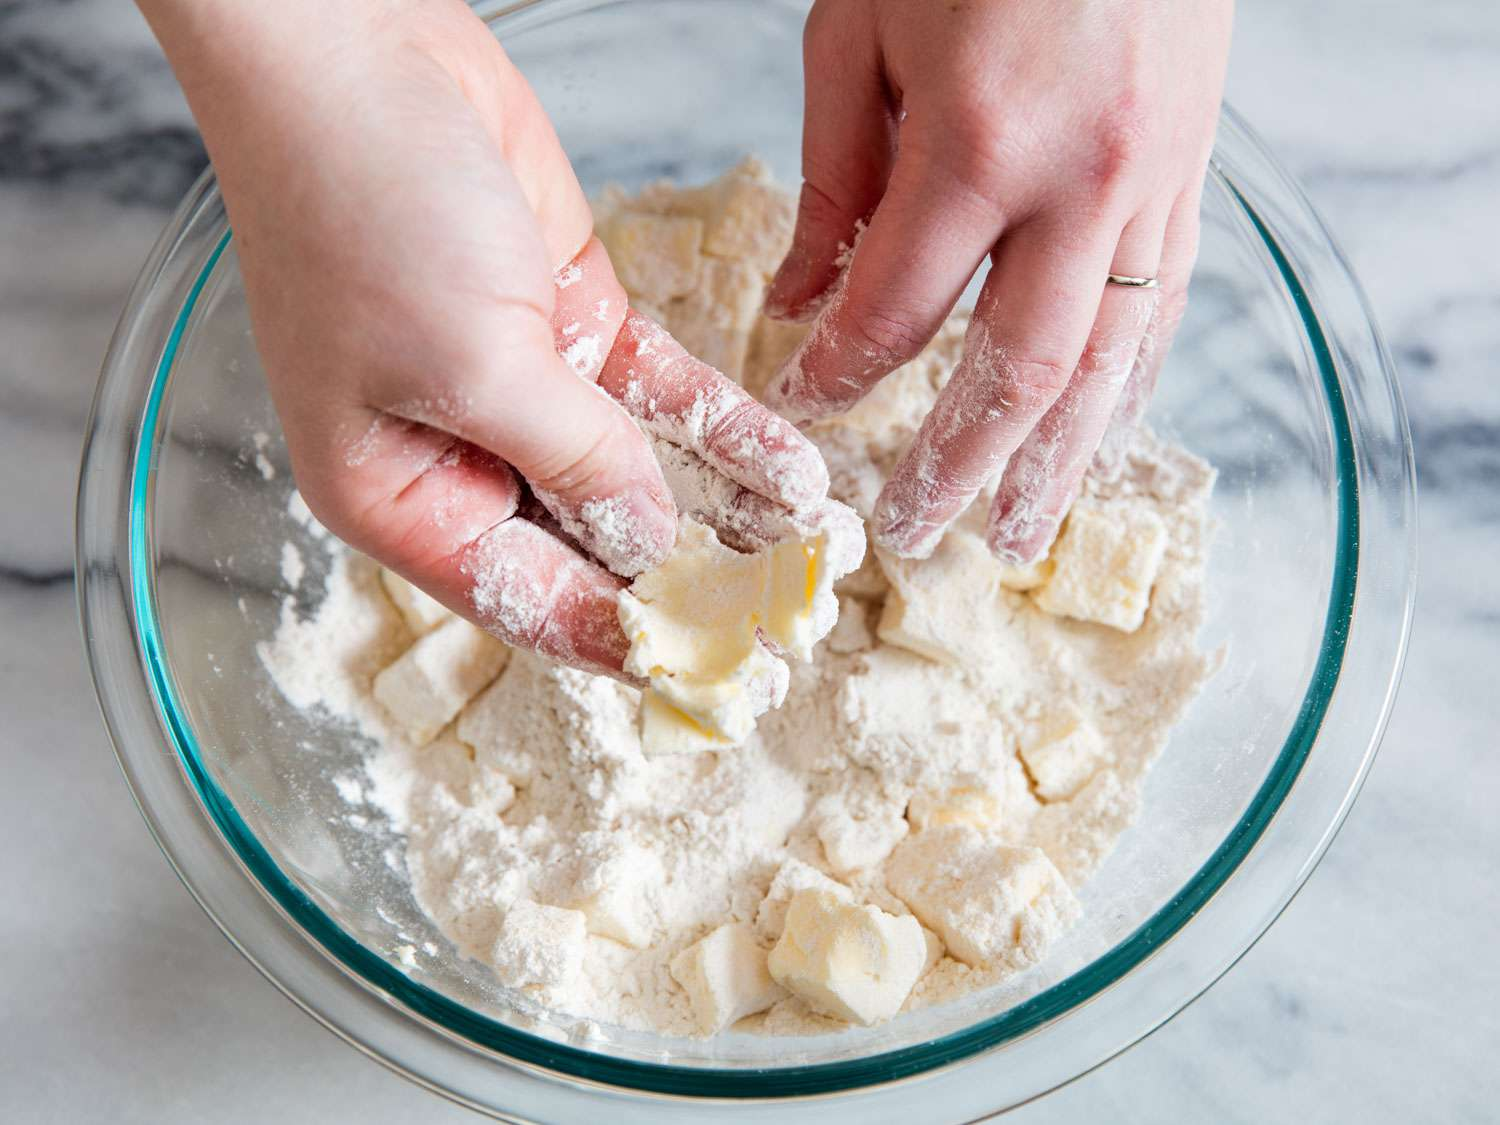 Hands working with a glass bowl of flour and butter, smashing flour-coated butter cubes flat